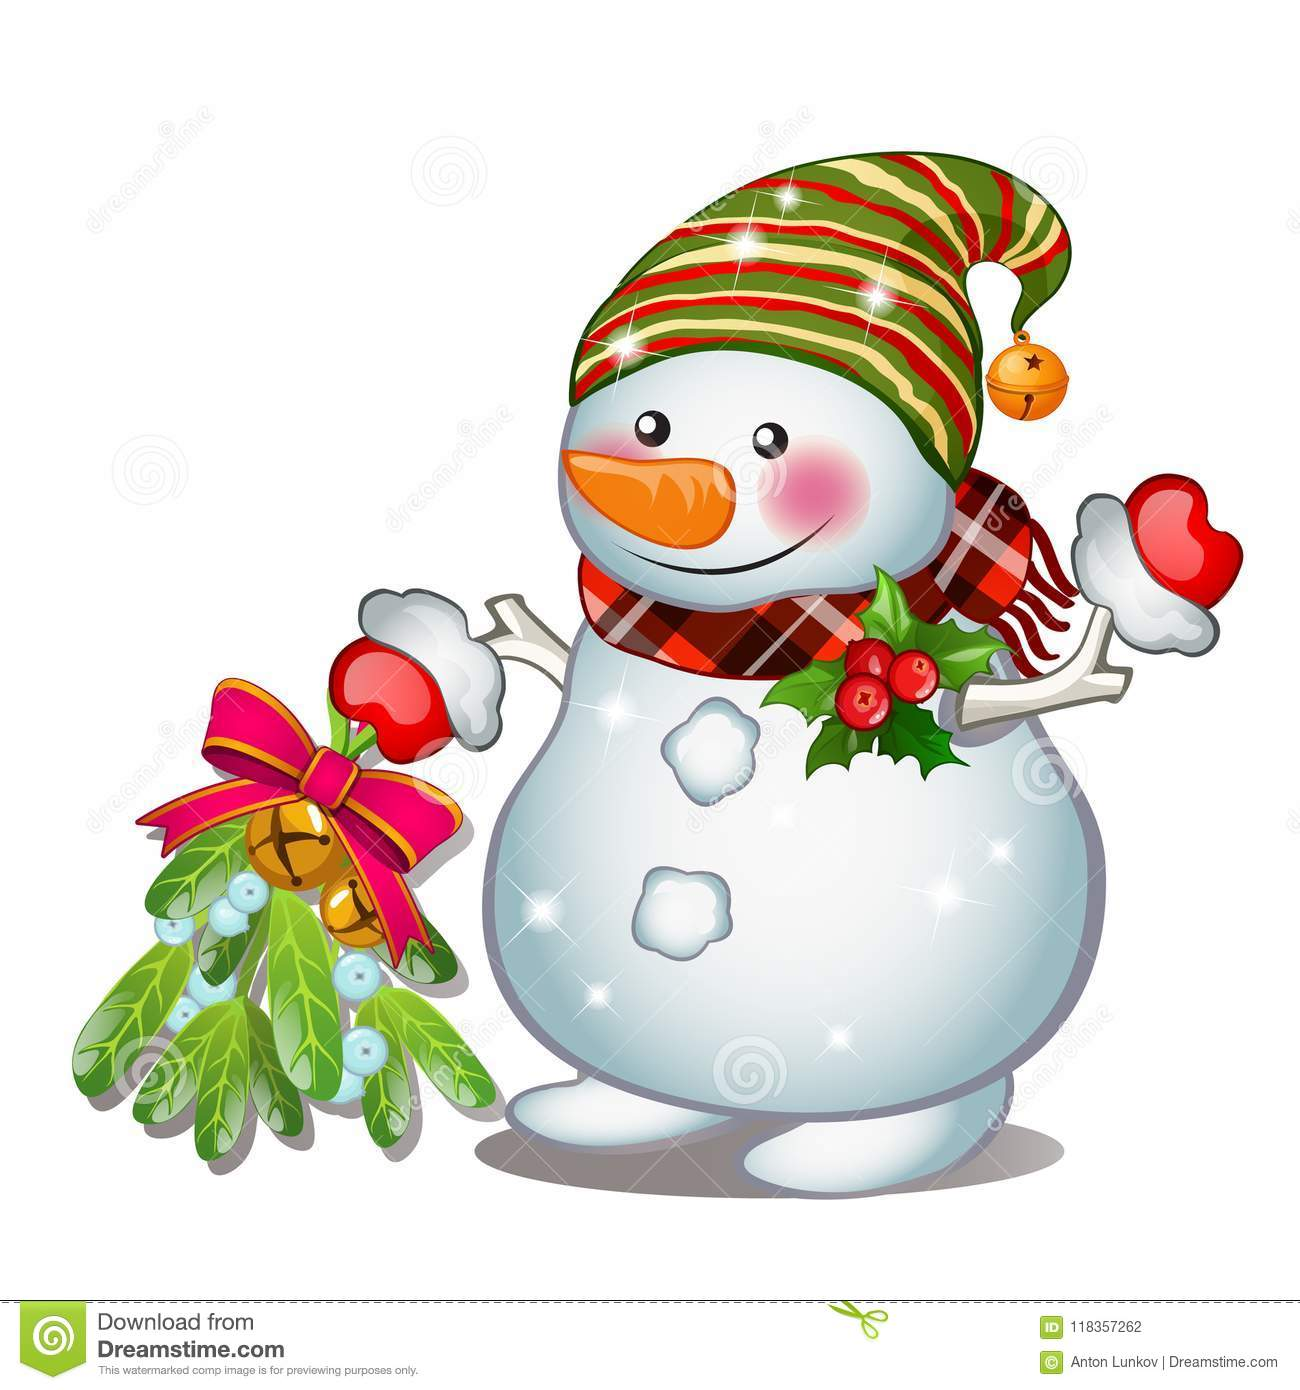 a smiling snowman wearing a striped cap sketch for greeting card